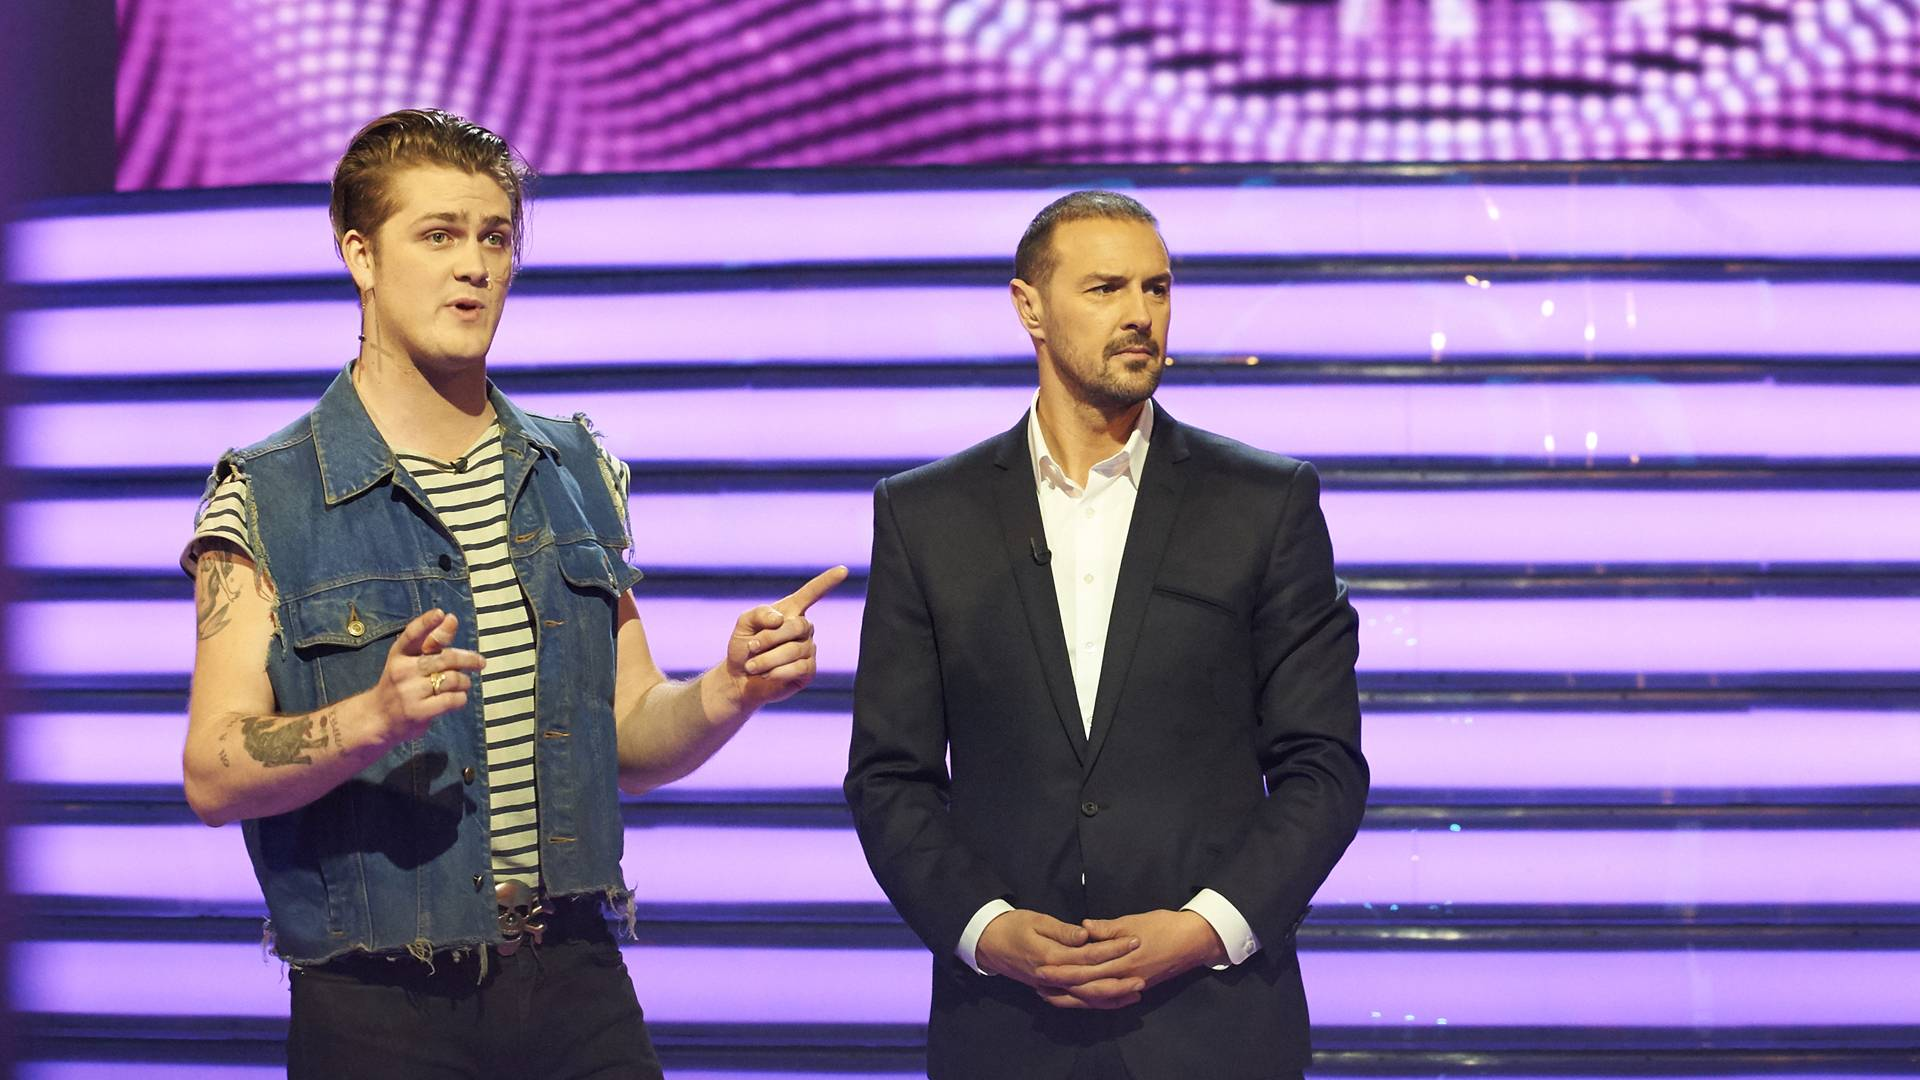 Take me out dating show uk 2nd